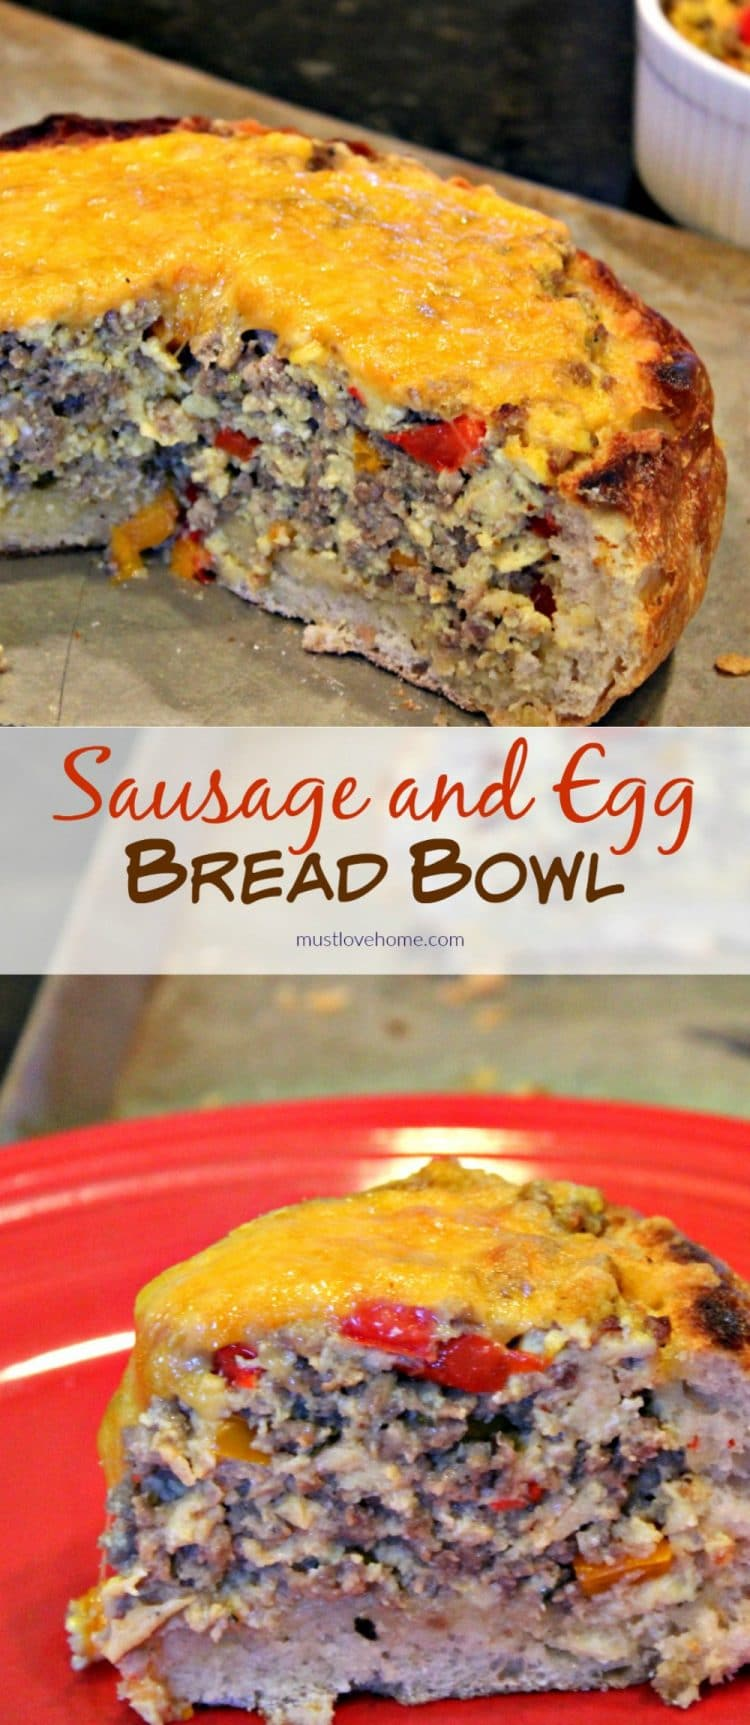 Sausage Egg Bowl - A crunchy Italian bread bowl filled with savory sausage, eggs, cheese and spices - perfect recipe to create a centerpiece dish for your next brunch or dinner!